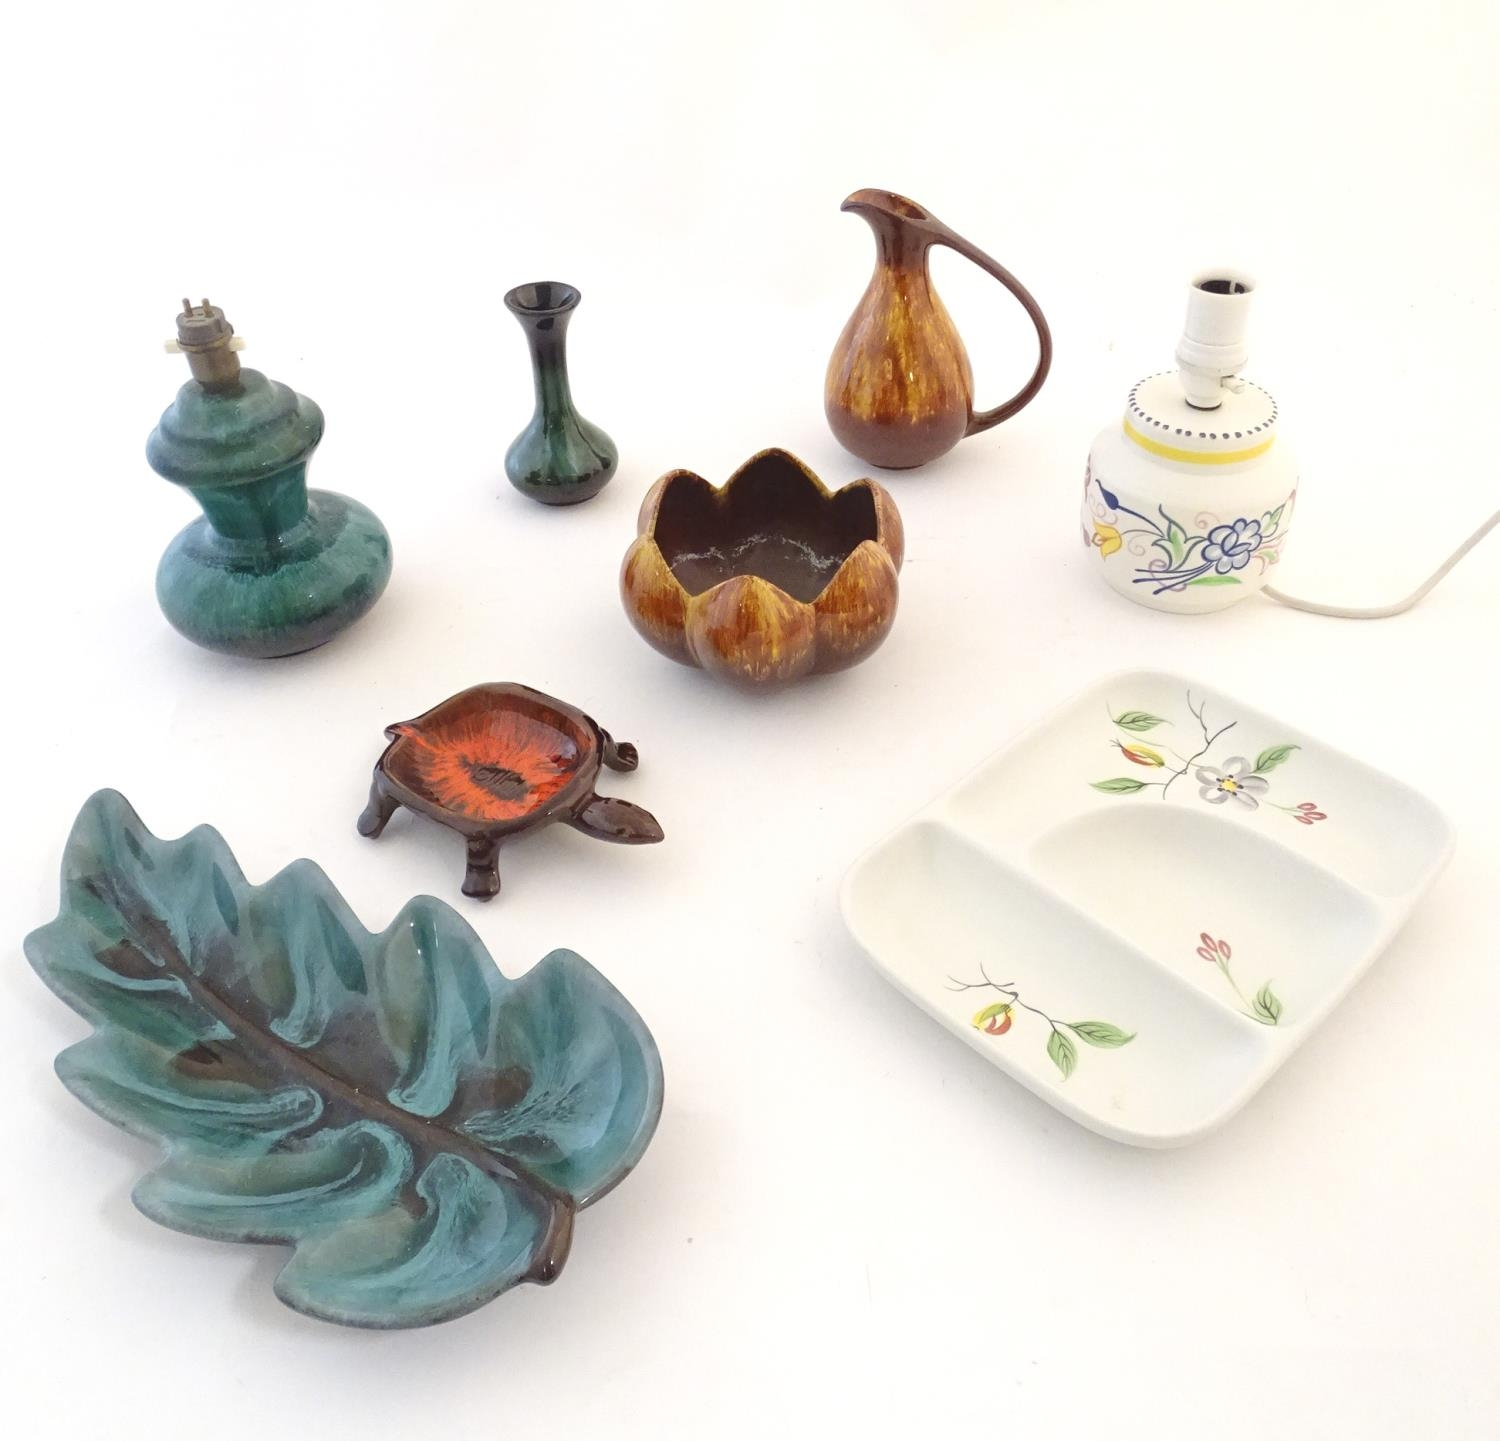 A quantity of vintage Canadian Blue Mountain Pottery wares comprising a lotus shaped bowl, a ewer, a - Image 3 of 20